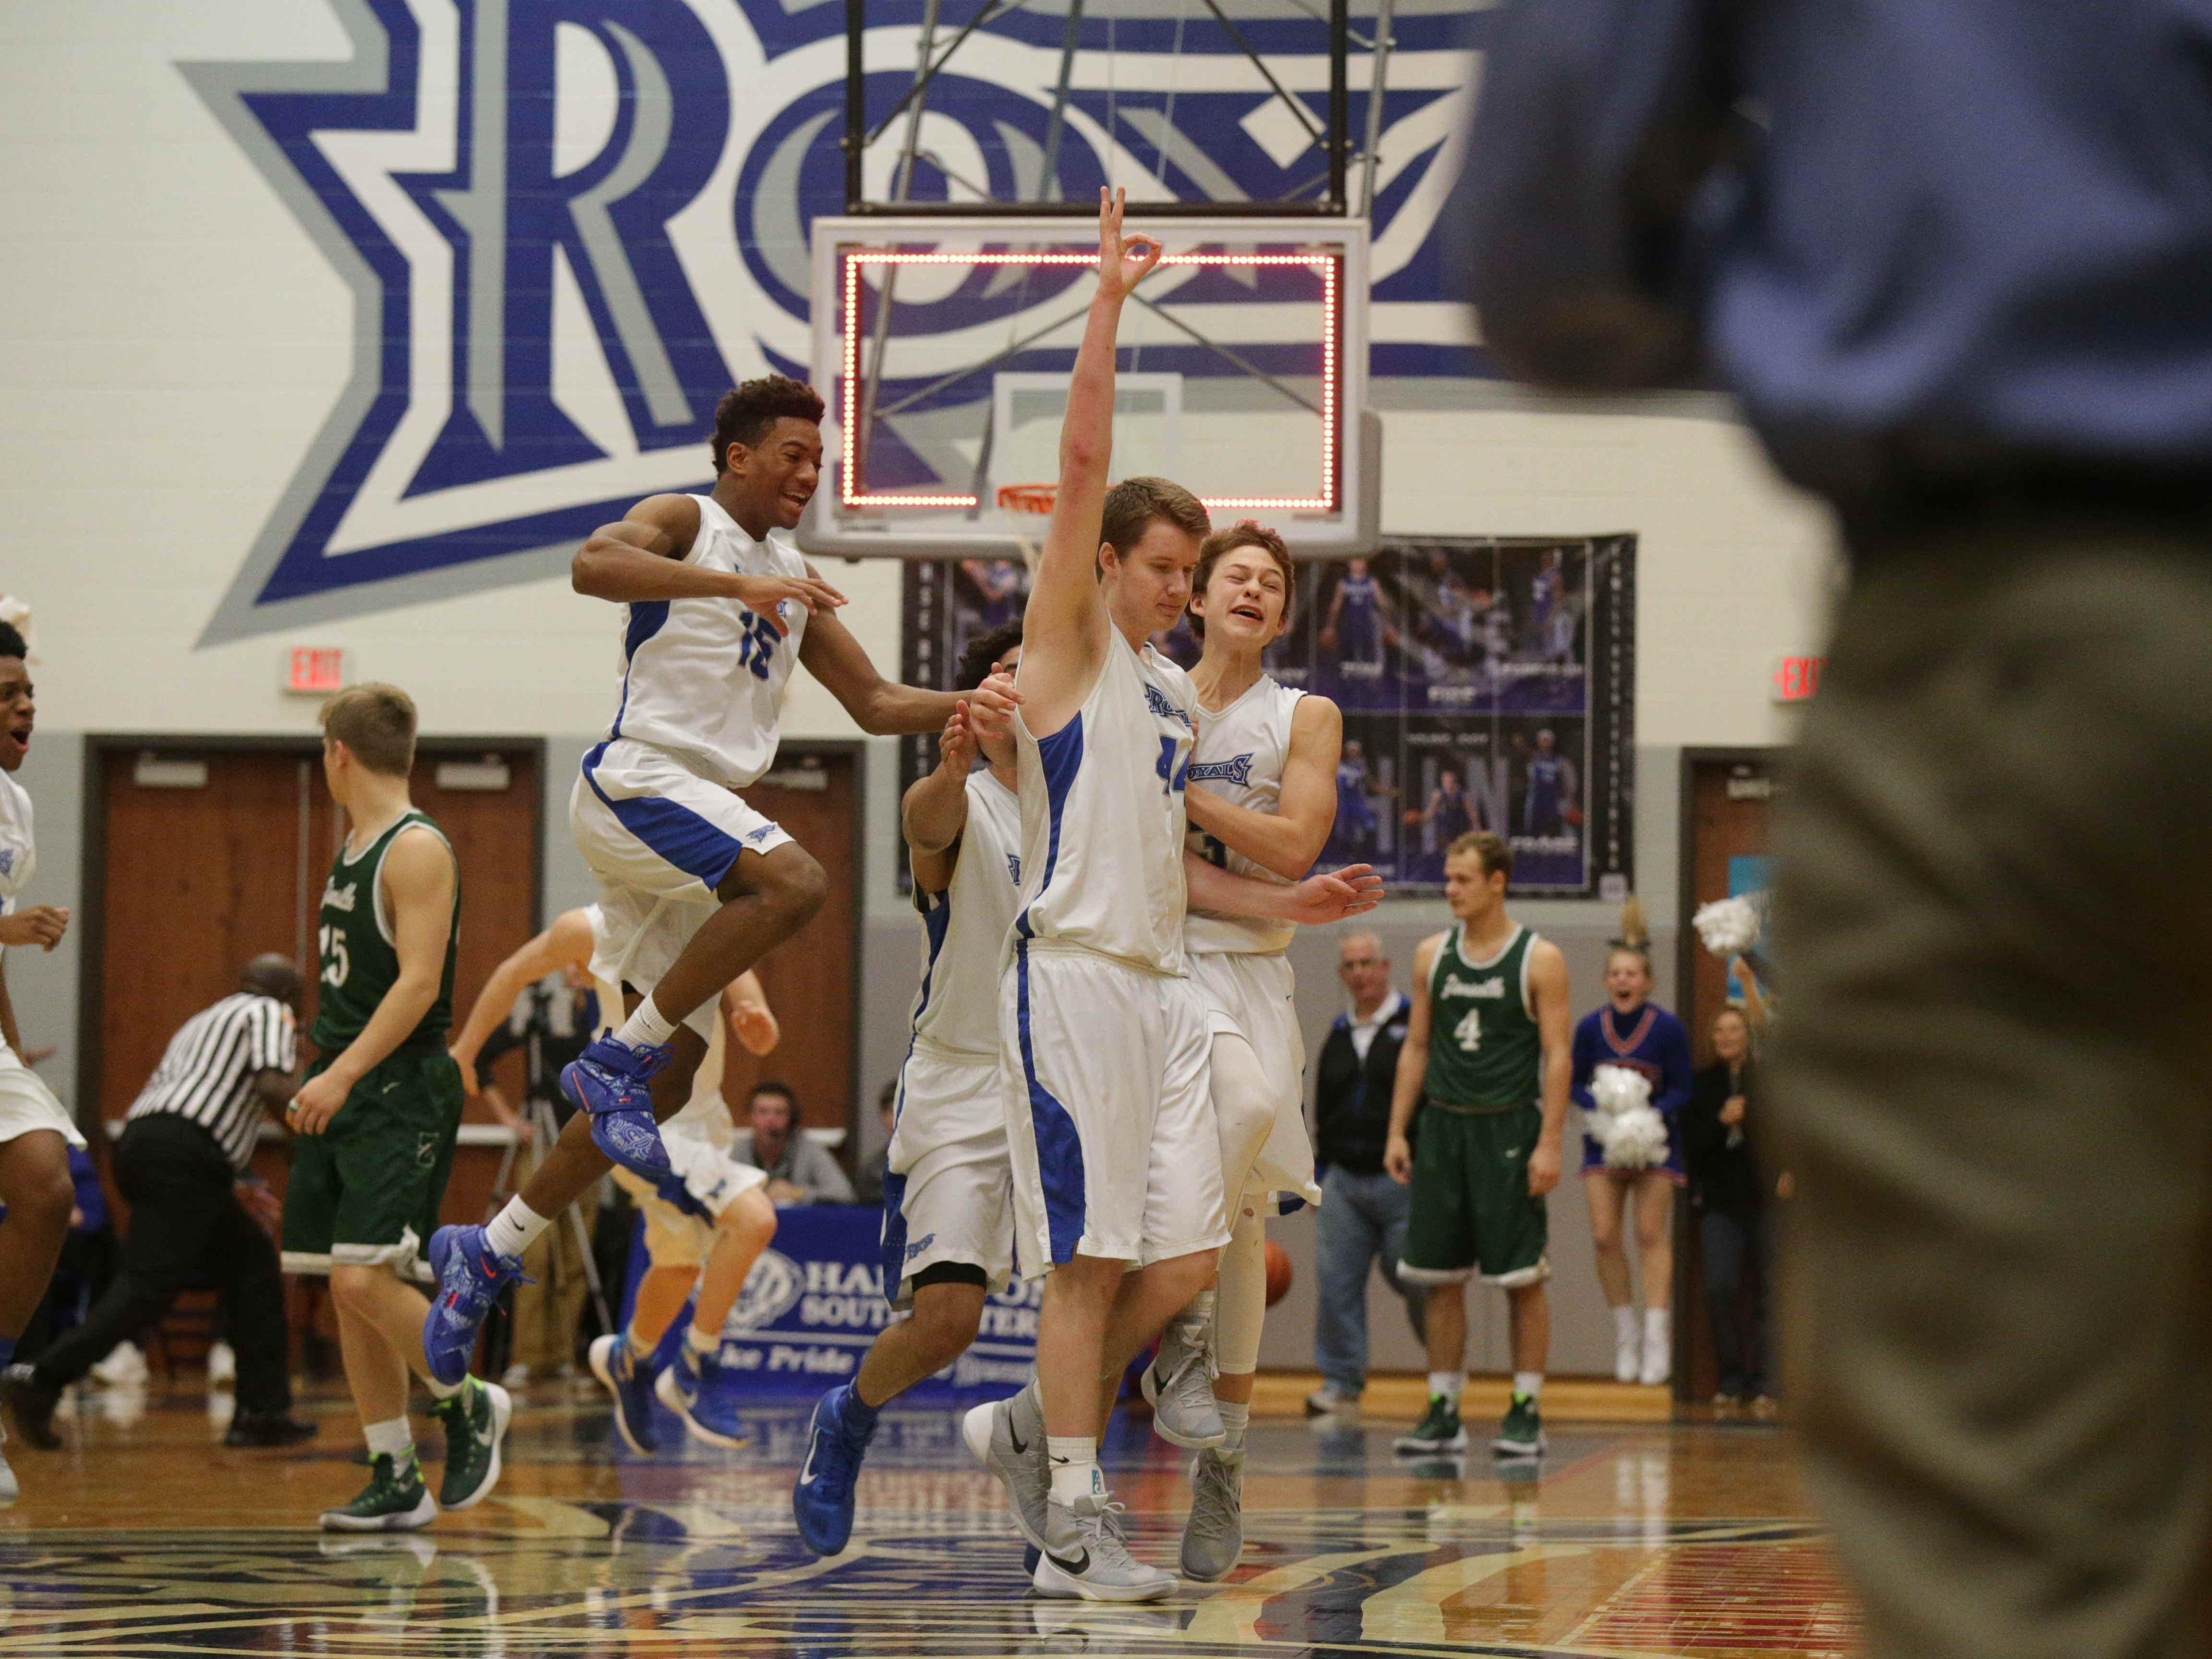 The Royal's #44, Brennan Schofield, center, celebrates after hitting a three point shot at the buzzer for the win, Friday January 22nd, 2016. Hamilton South Eastern VS Zionsville at HSE. Royals win 48-47. #15 Greg Miller, #42 Zach Gunn (behind), #3 Jack Davidson, right.